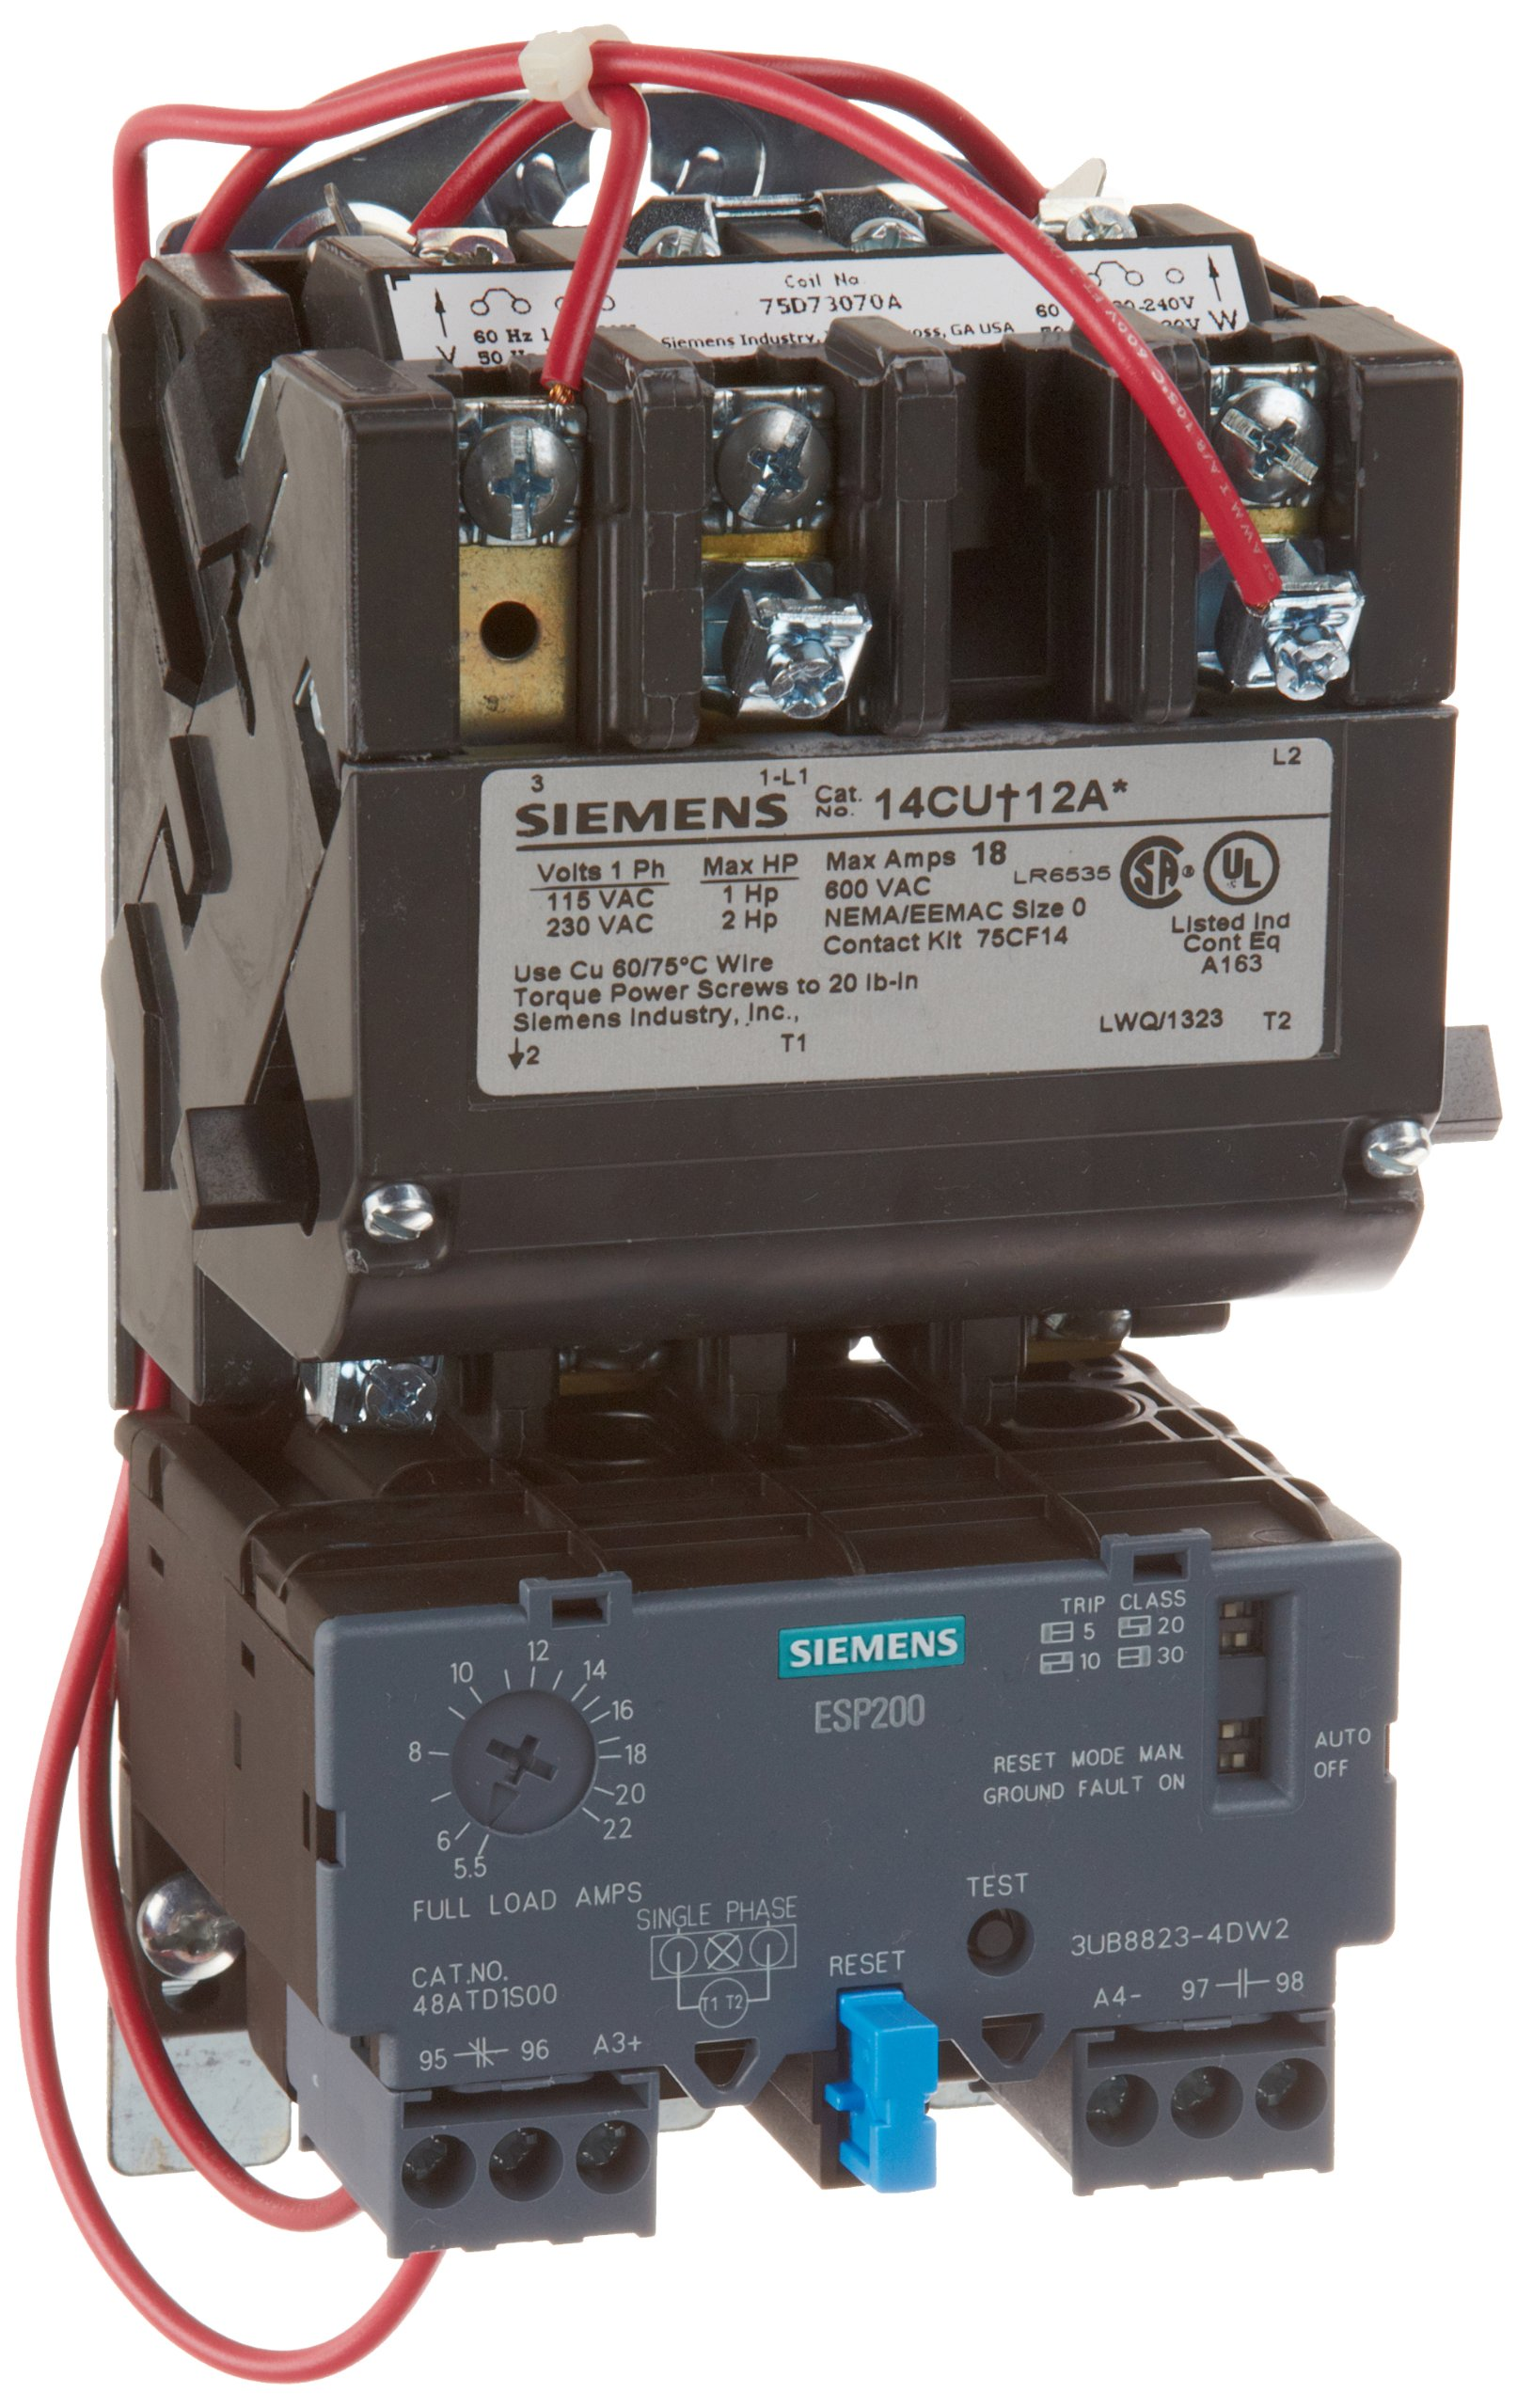 Siemens 14CUD12AA Heavy Duty Motor Starter, Solid State Overload, Auto/Manual Reset, Open Type, Standard Width Enclosure, Single Phase, 2 Pole, 0 NEMA Size, 5.5-22A Amp Range, A1 Frame Size, 110-120/220-240 at 60Hz Coil Voltage